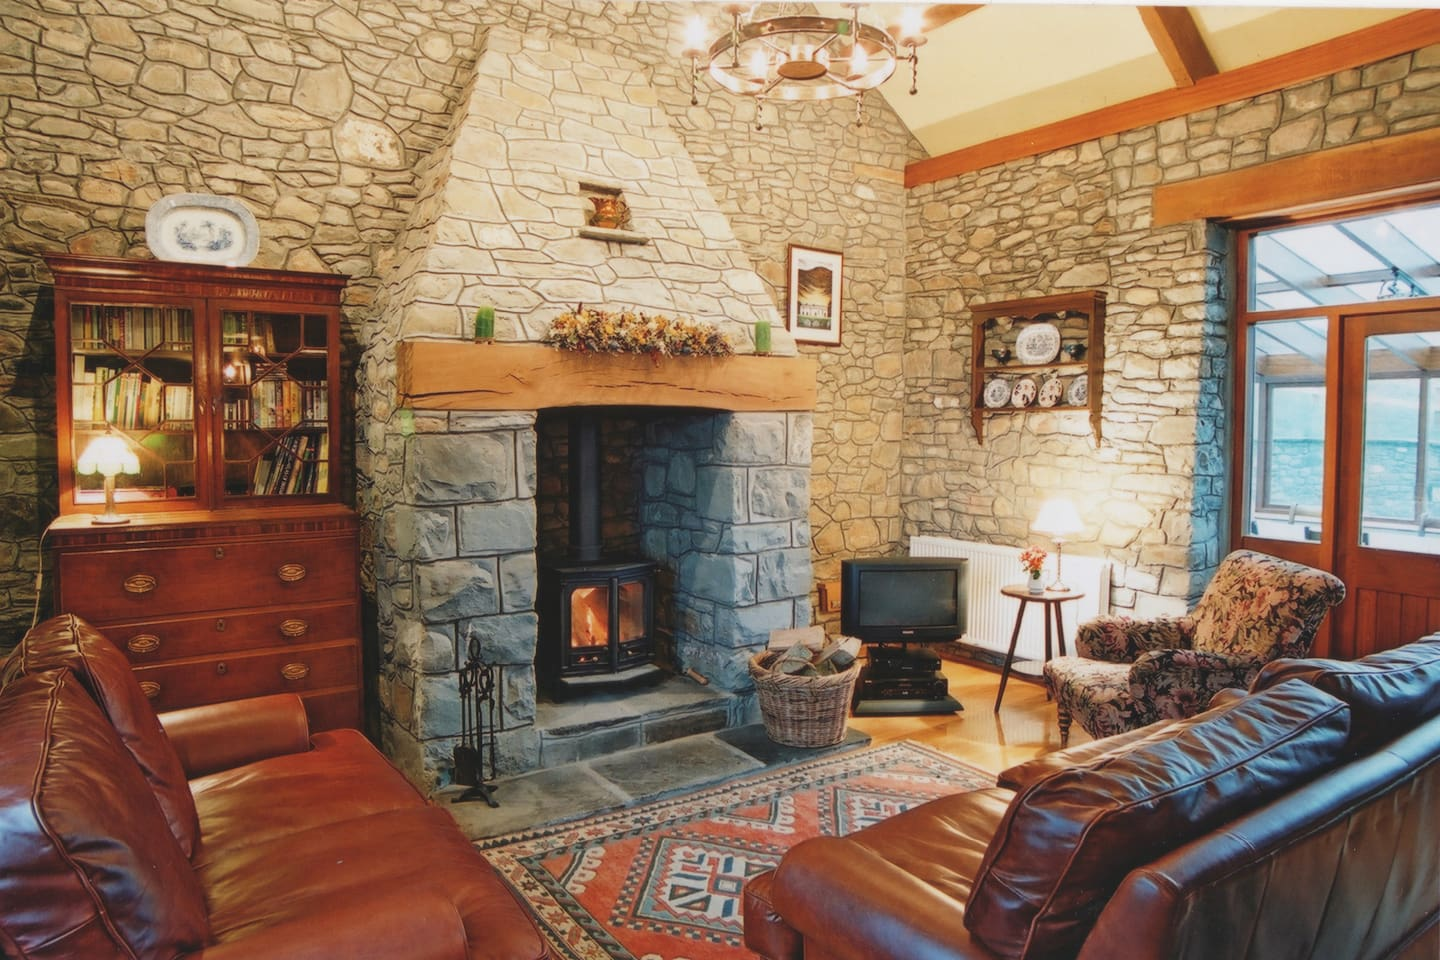 A Living Room full of character and a cosy log fire.